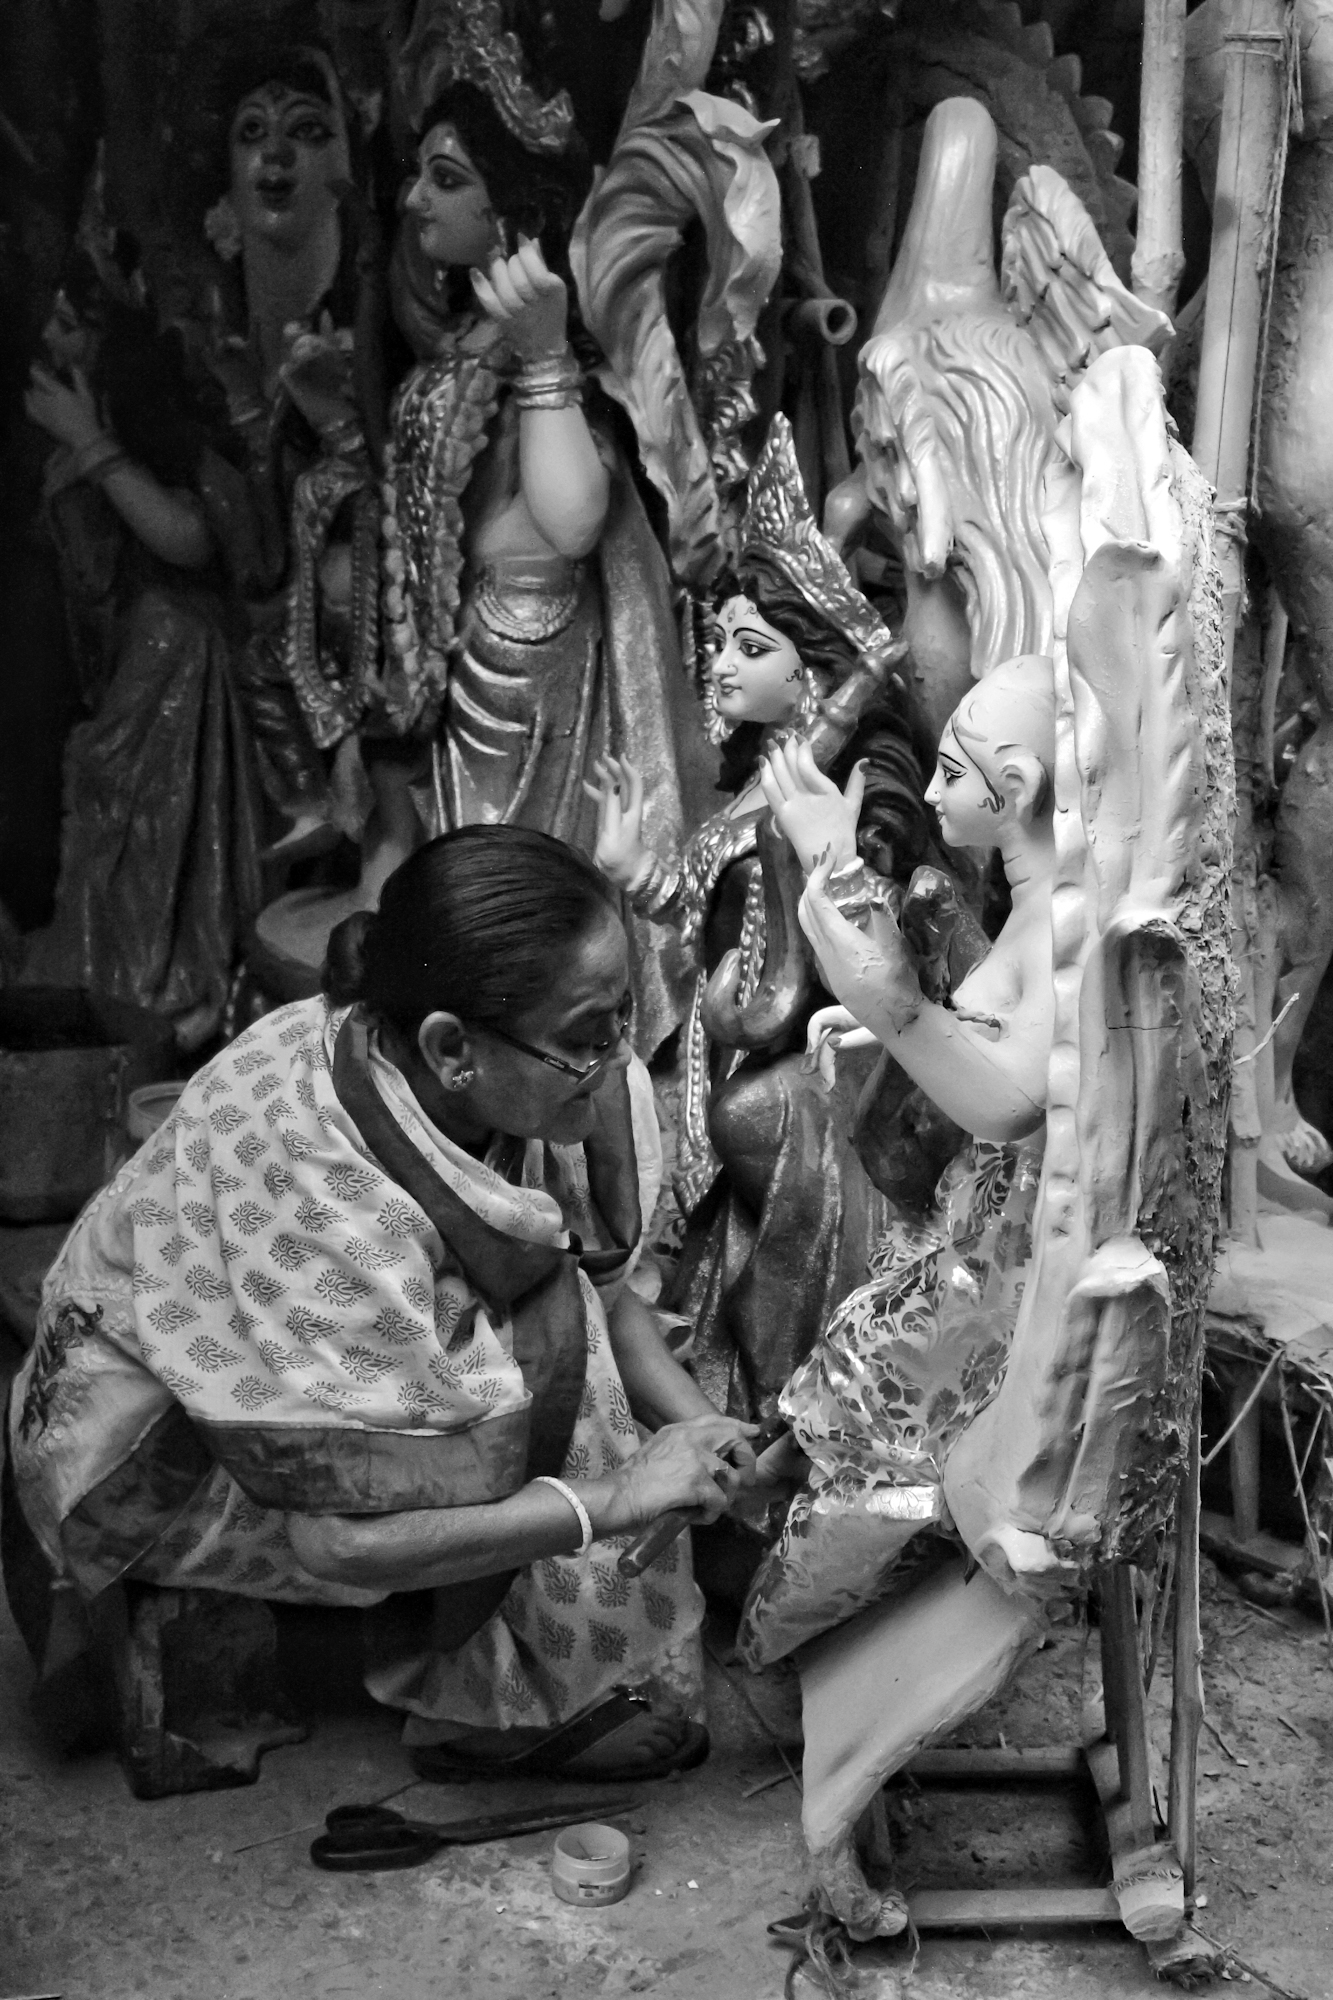 This is not an uncommon sight in Kumortuli, North Kolkata. A number of amazing women can be seen crafting the finest idols, tailoring the most beautiful clothes for the idols or decking up the most colorful patterned jewelry for the idols. If women power needs a face, this be it,